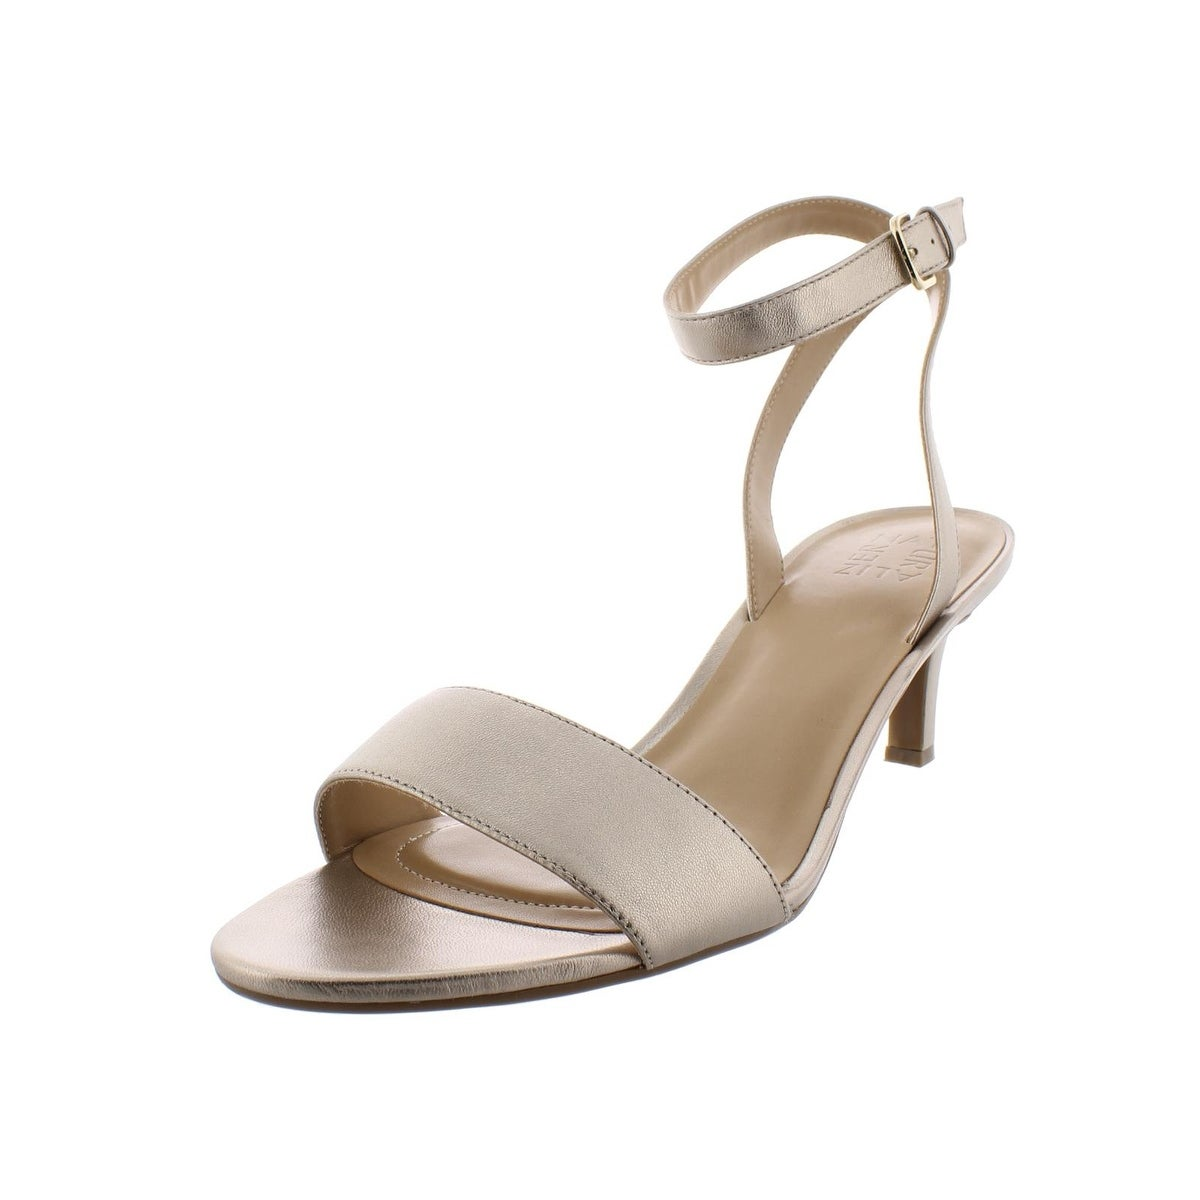 d0b8672adf1 Shop Naturalizer Womens Tinda Dress Sandals Mid Heels - Free ...